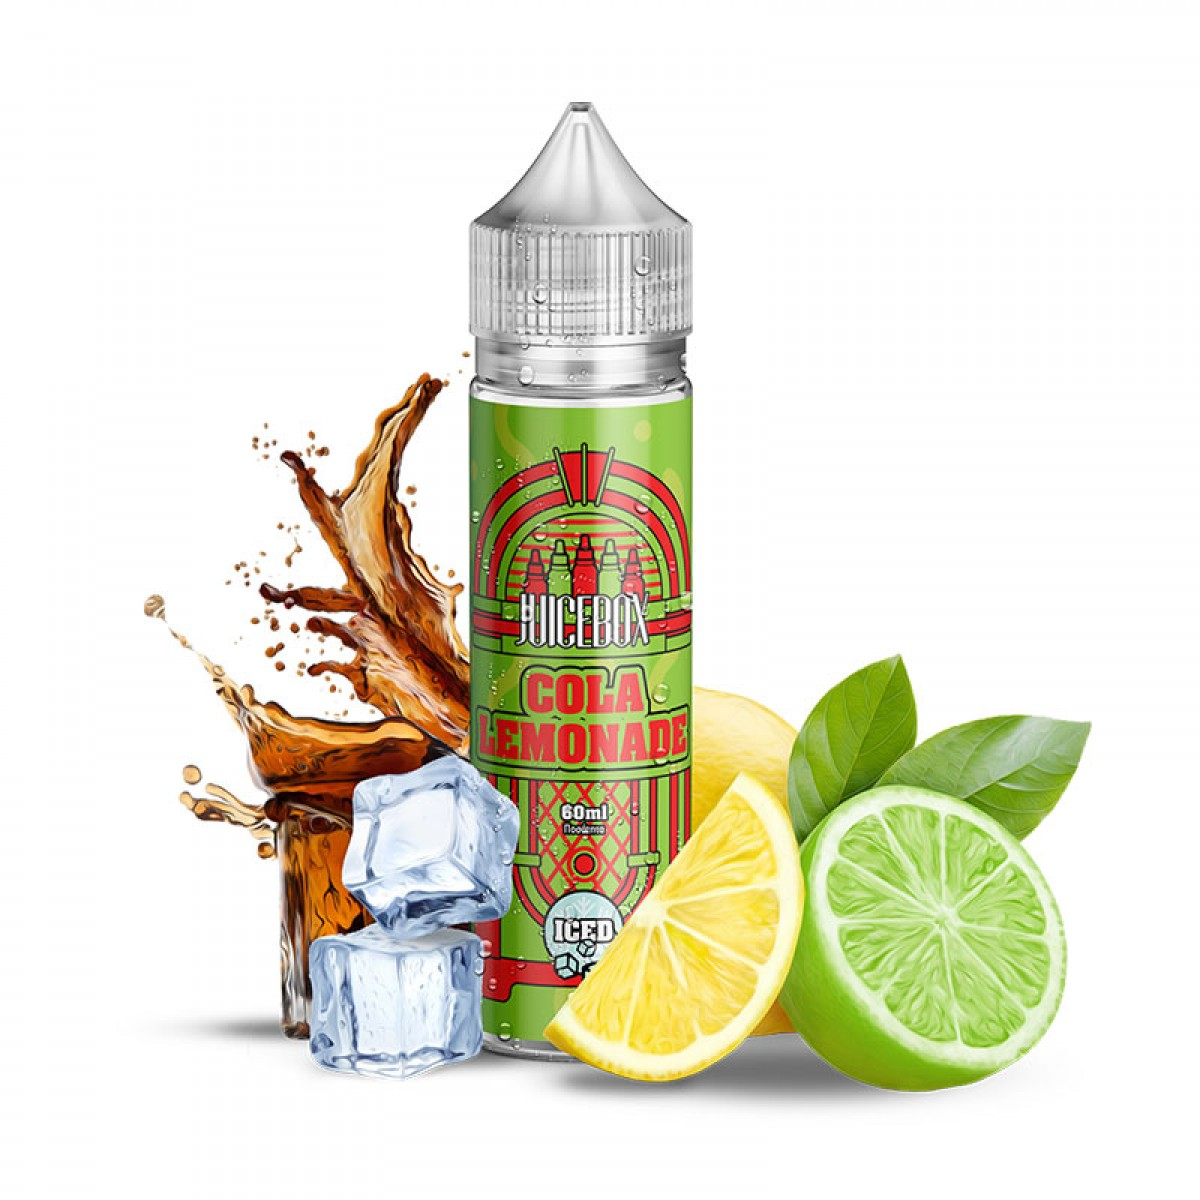 Juicebox Cola Lemonade Flavorshot 12ml/60ml